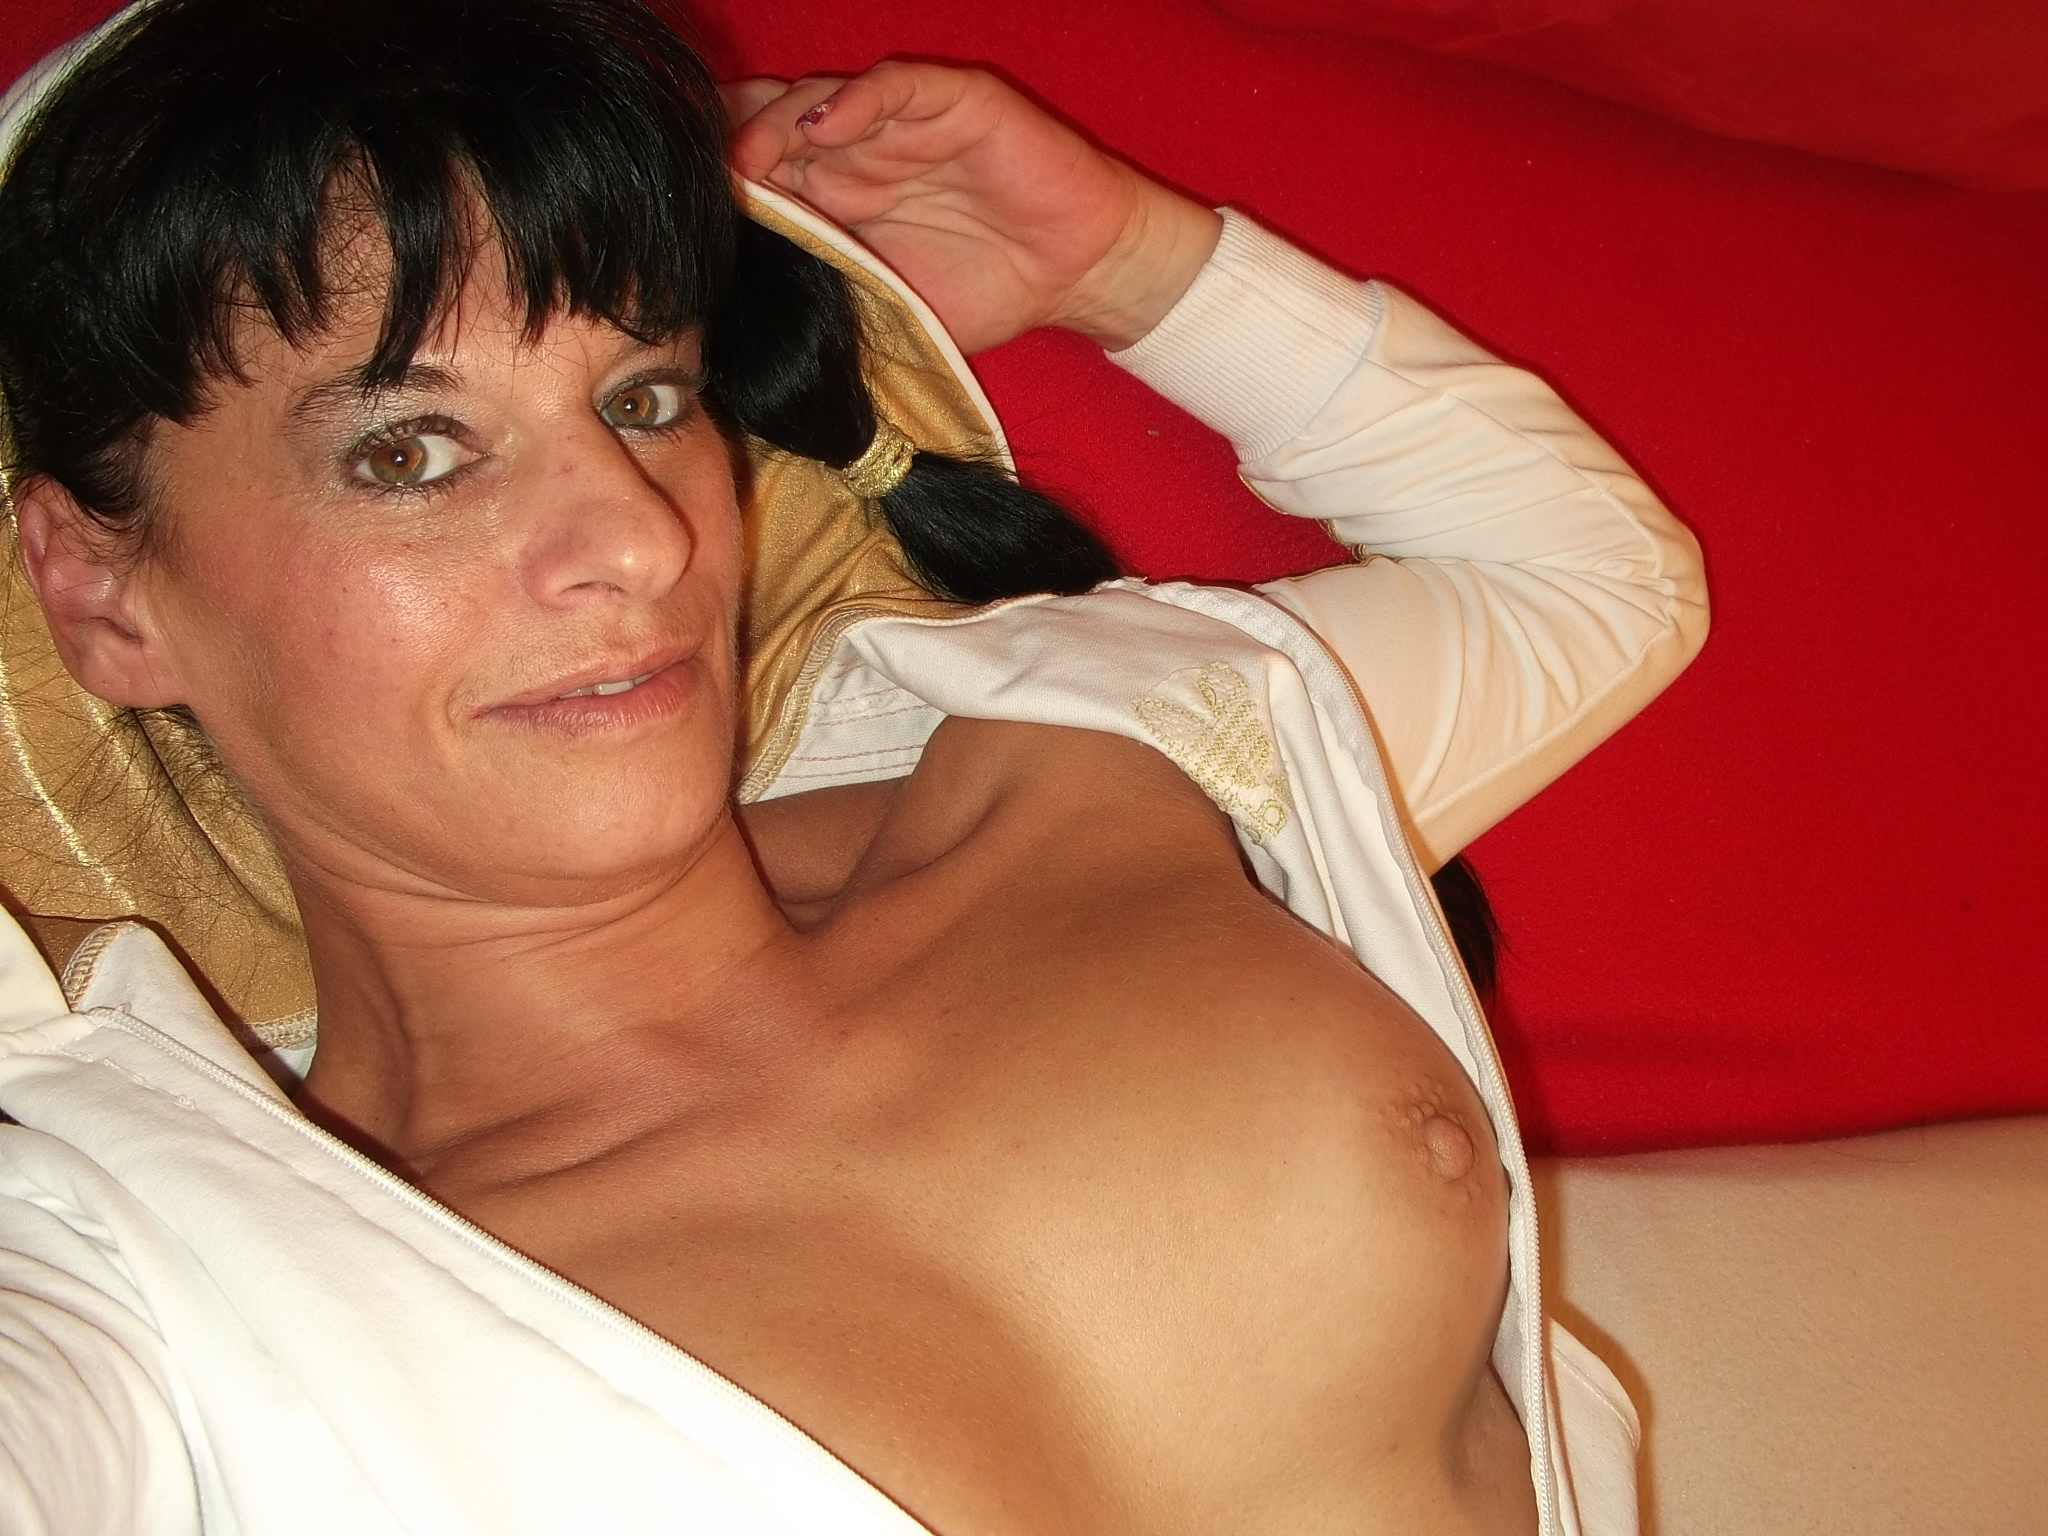 PRIVATE DOMINA SUCHT SIE SUCHT SEXPARTNER